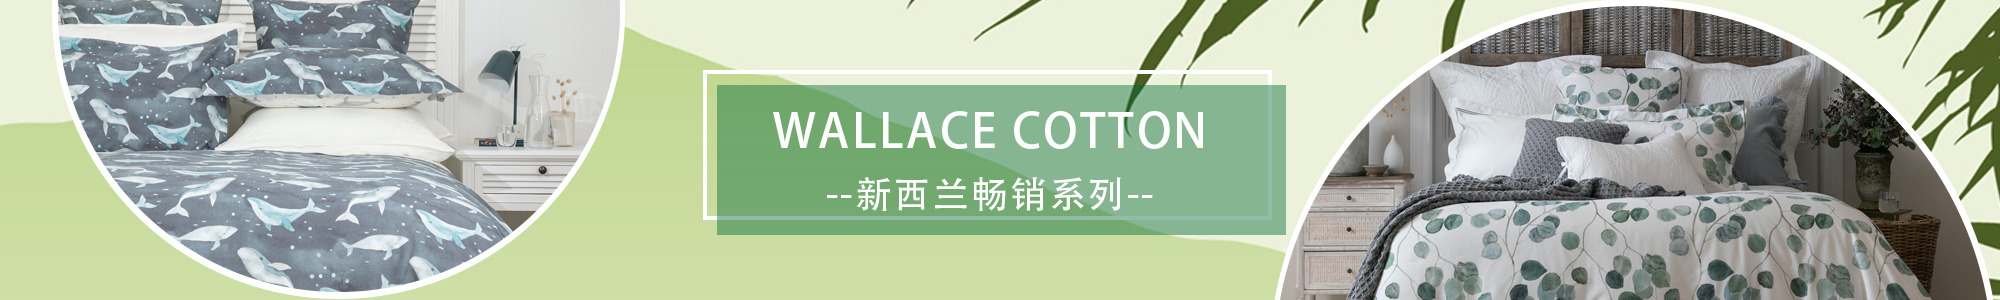 Wallace Cotton新西兰